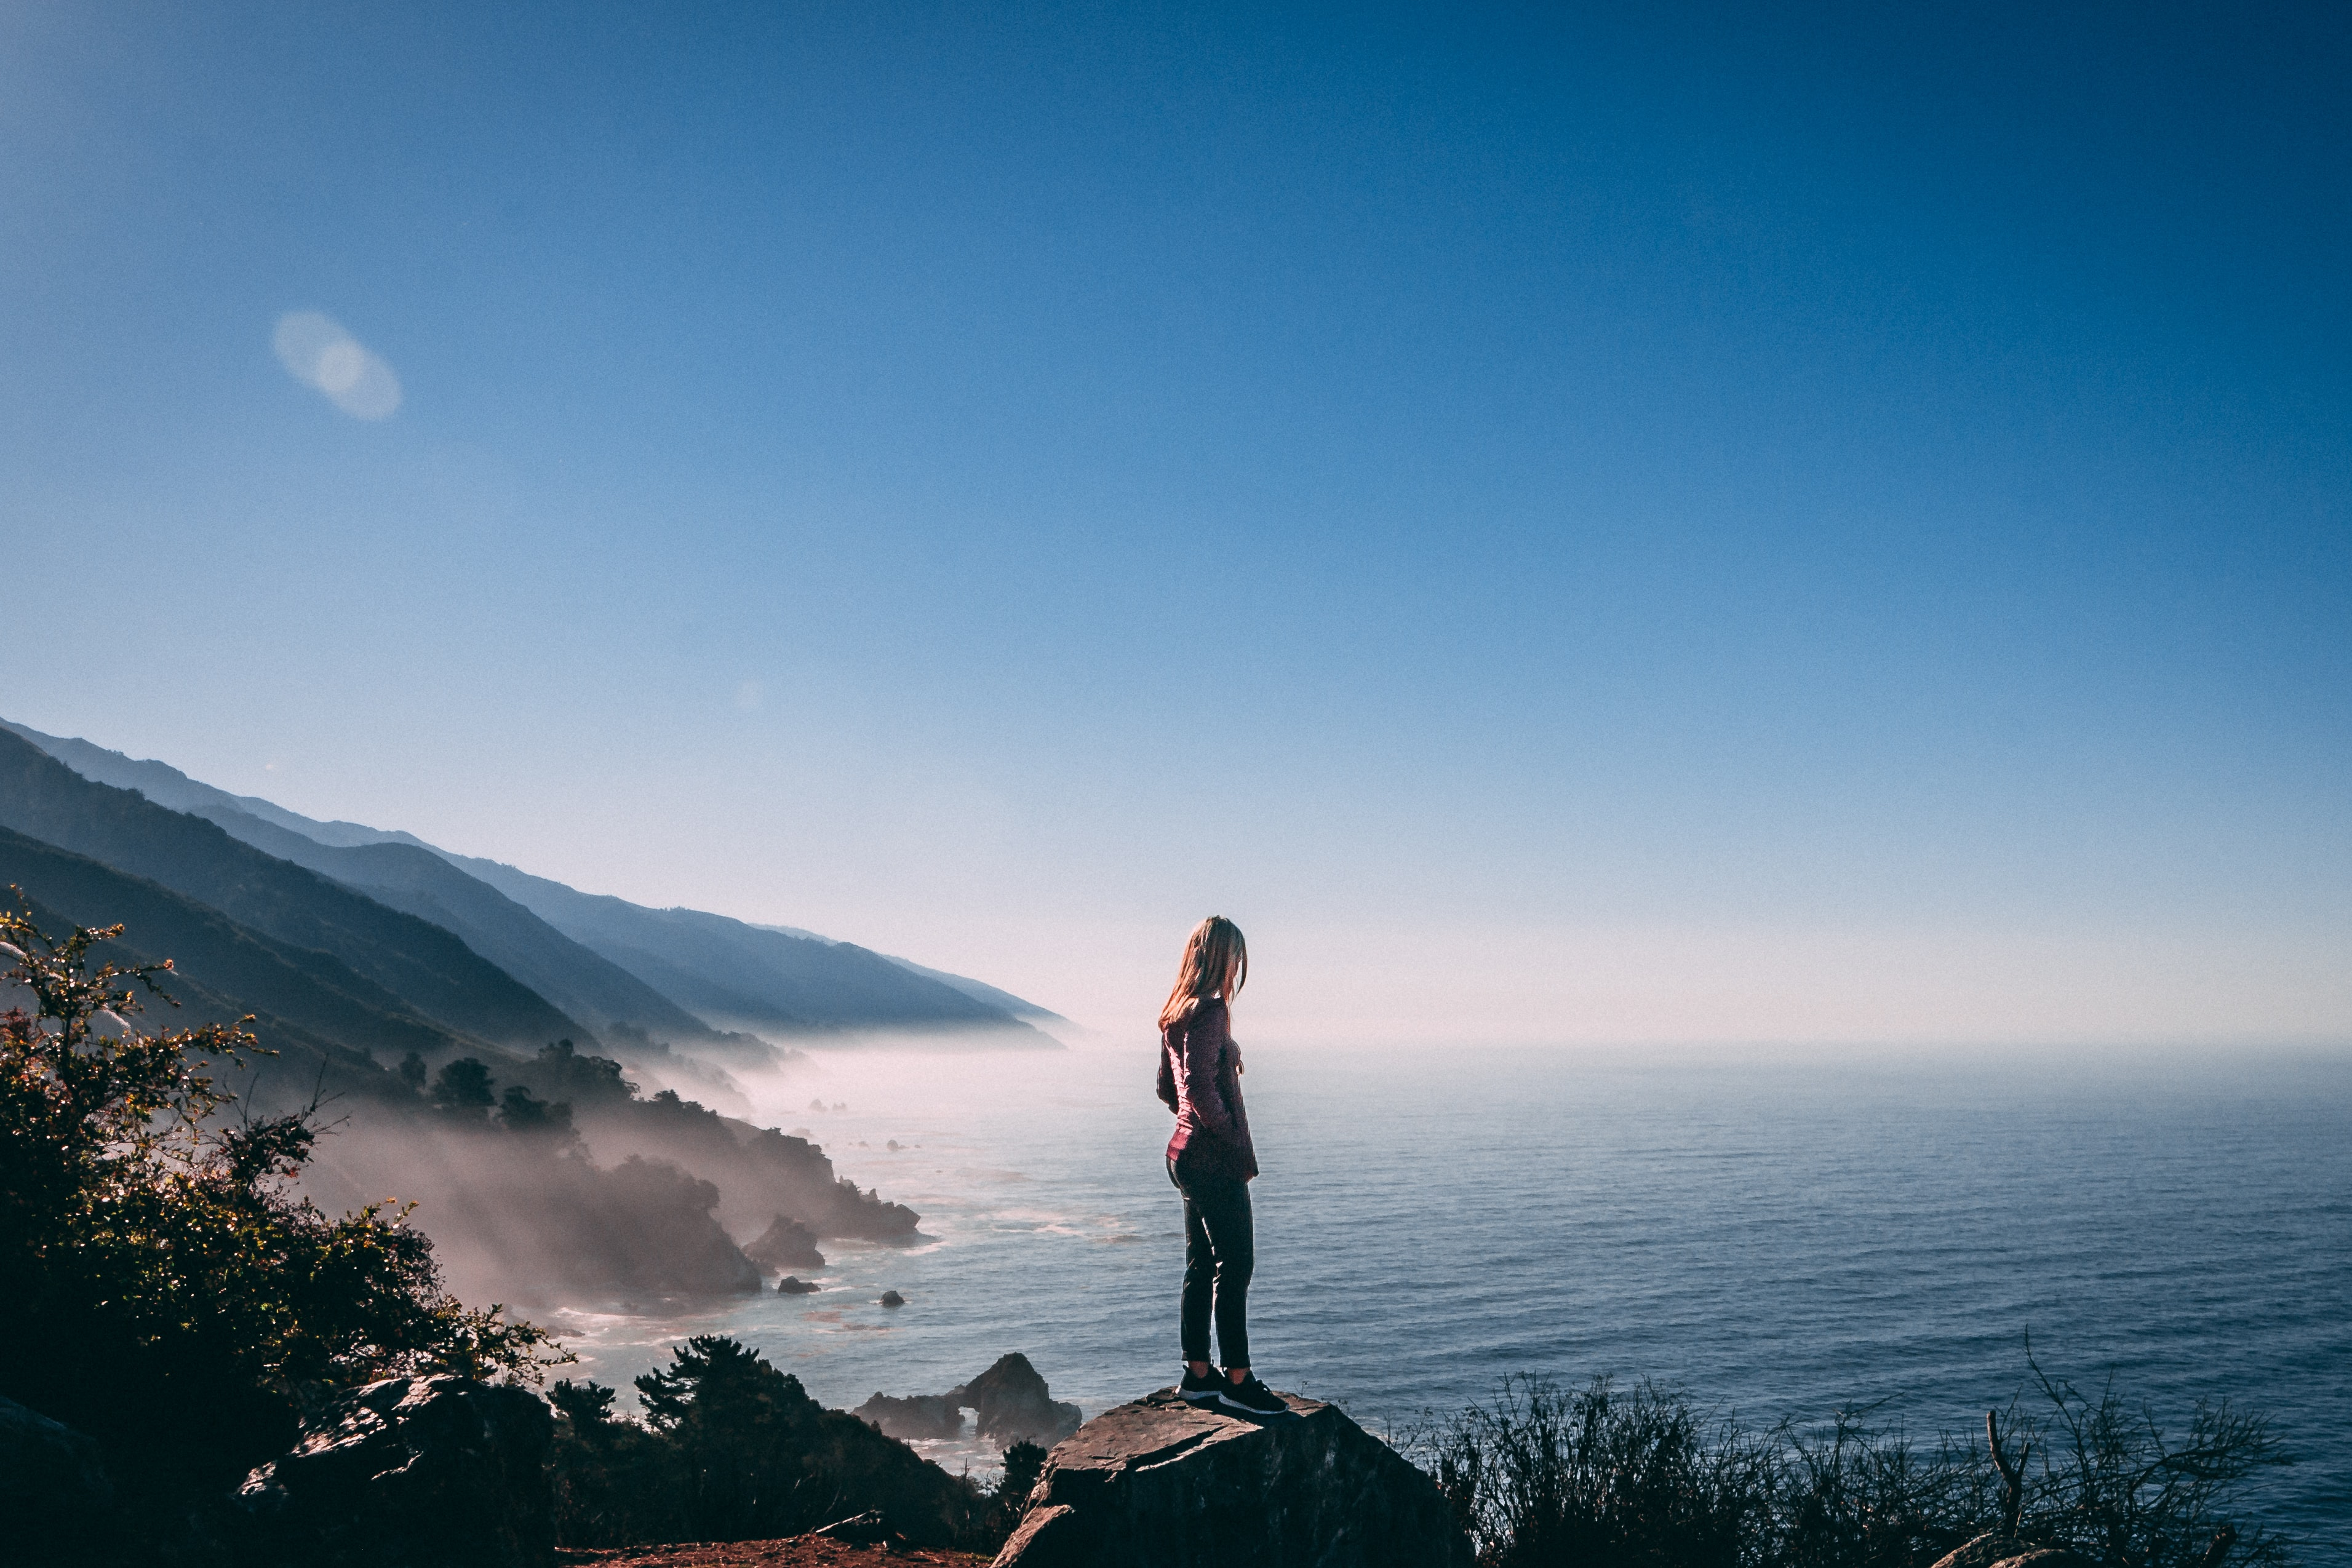 woman standing on cliff near sea